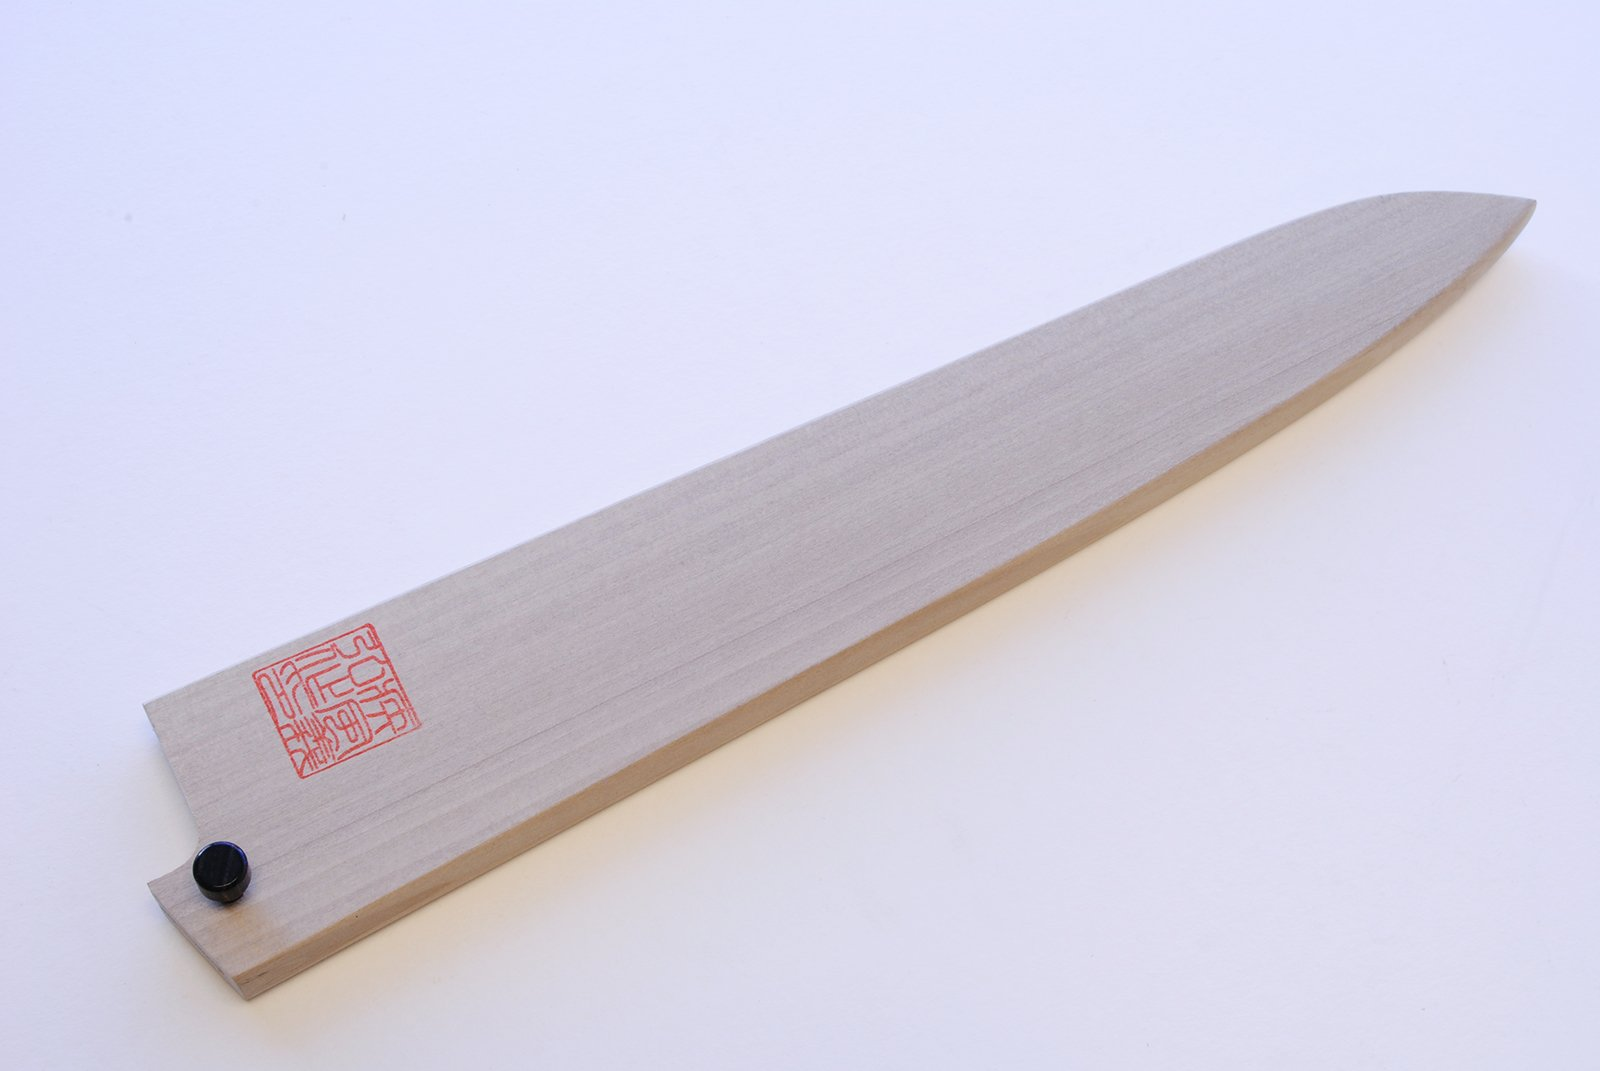 Yoshihiro Natural Magnolia Wood Saya Cover Blade Protector for Sujihiki Slicer (270mm)